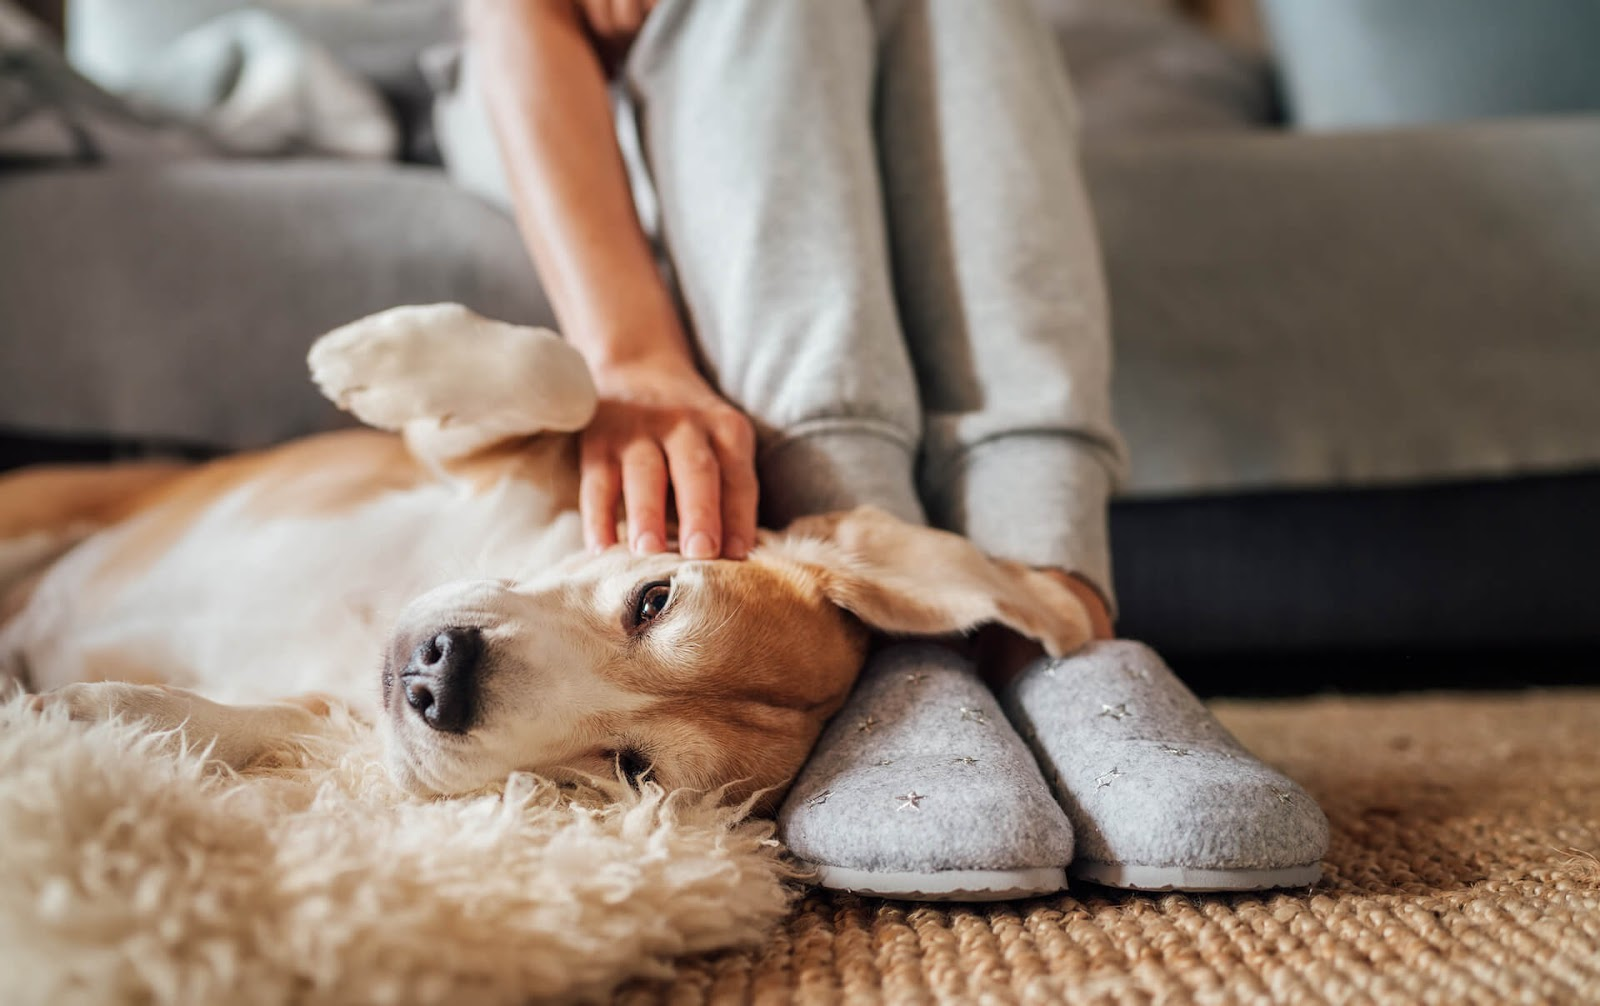 Dog laying on owner's slippers asking for belly rubs